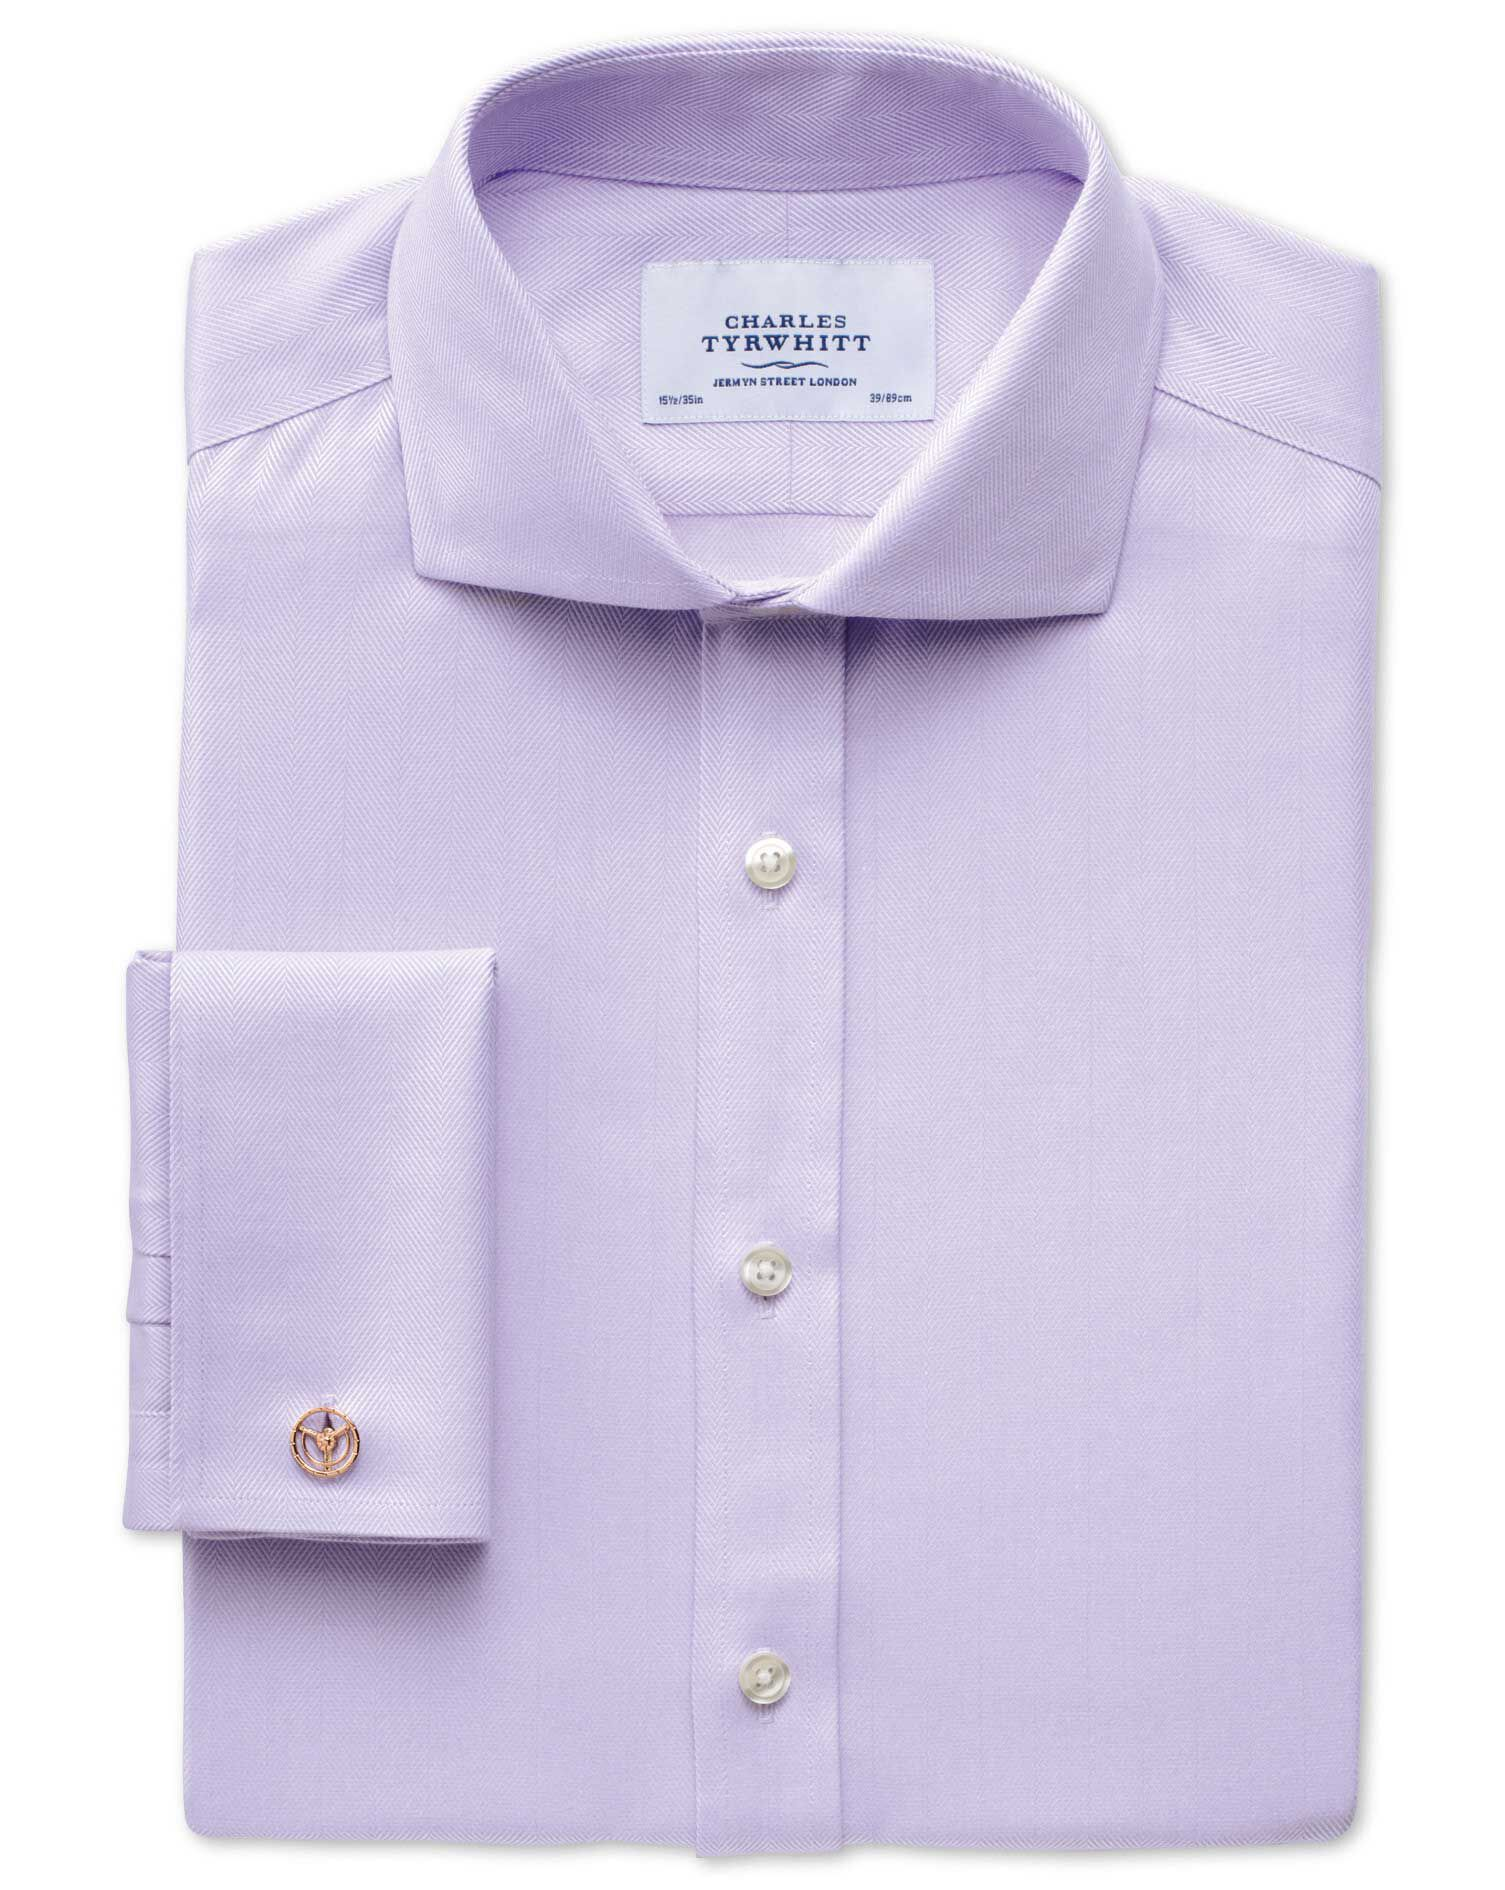 Extra Slim Fit Cutaway Collar Non-Iron Herringbone Lilac Cotton Formal Shirt Double Cuff Size 17/37